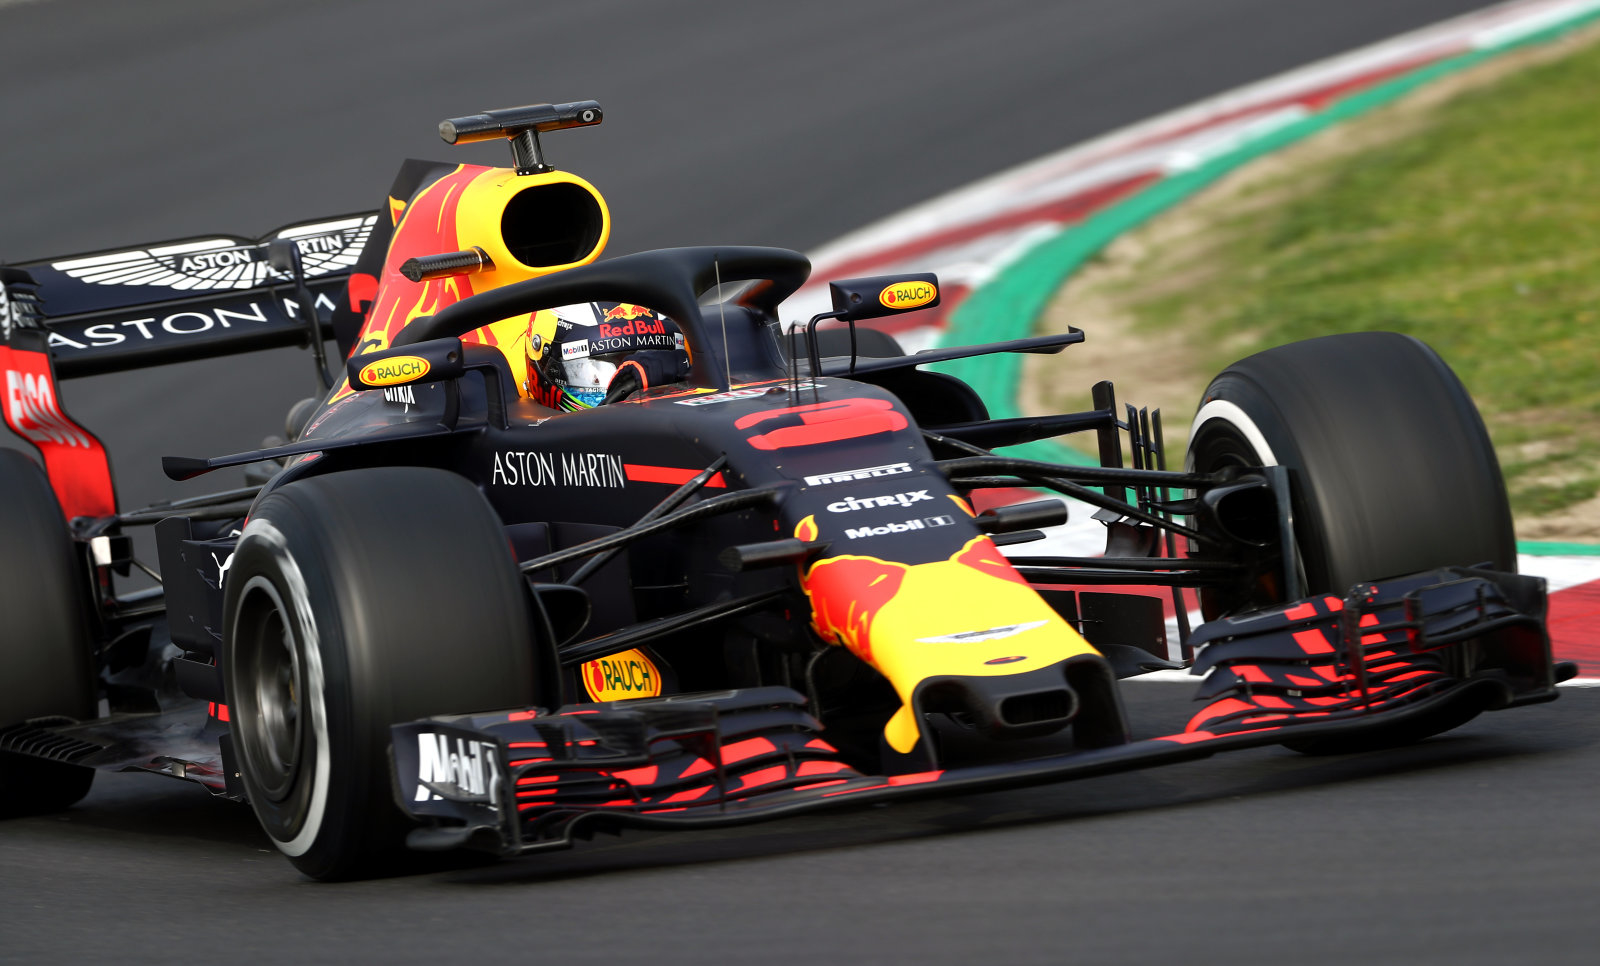 Red Bull's Daniel Ricciardo during day one of pre-season testing at the Circuit de Barcelona-Catalunya, Barcelona.